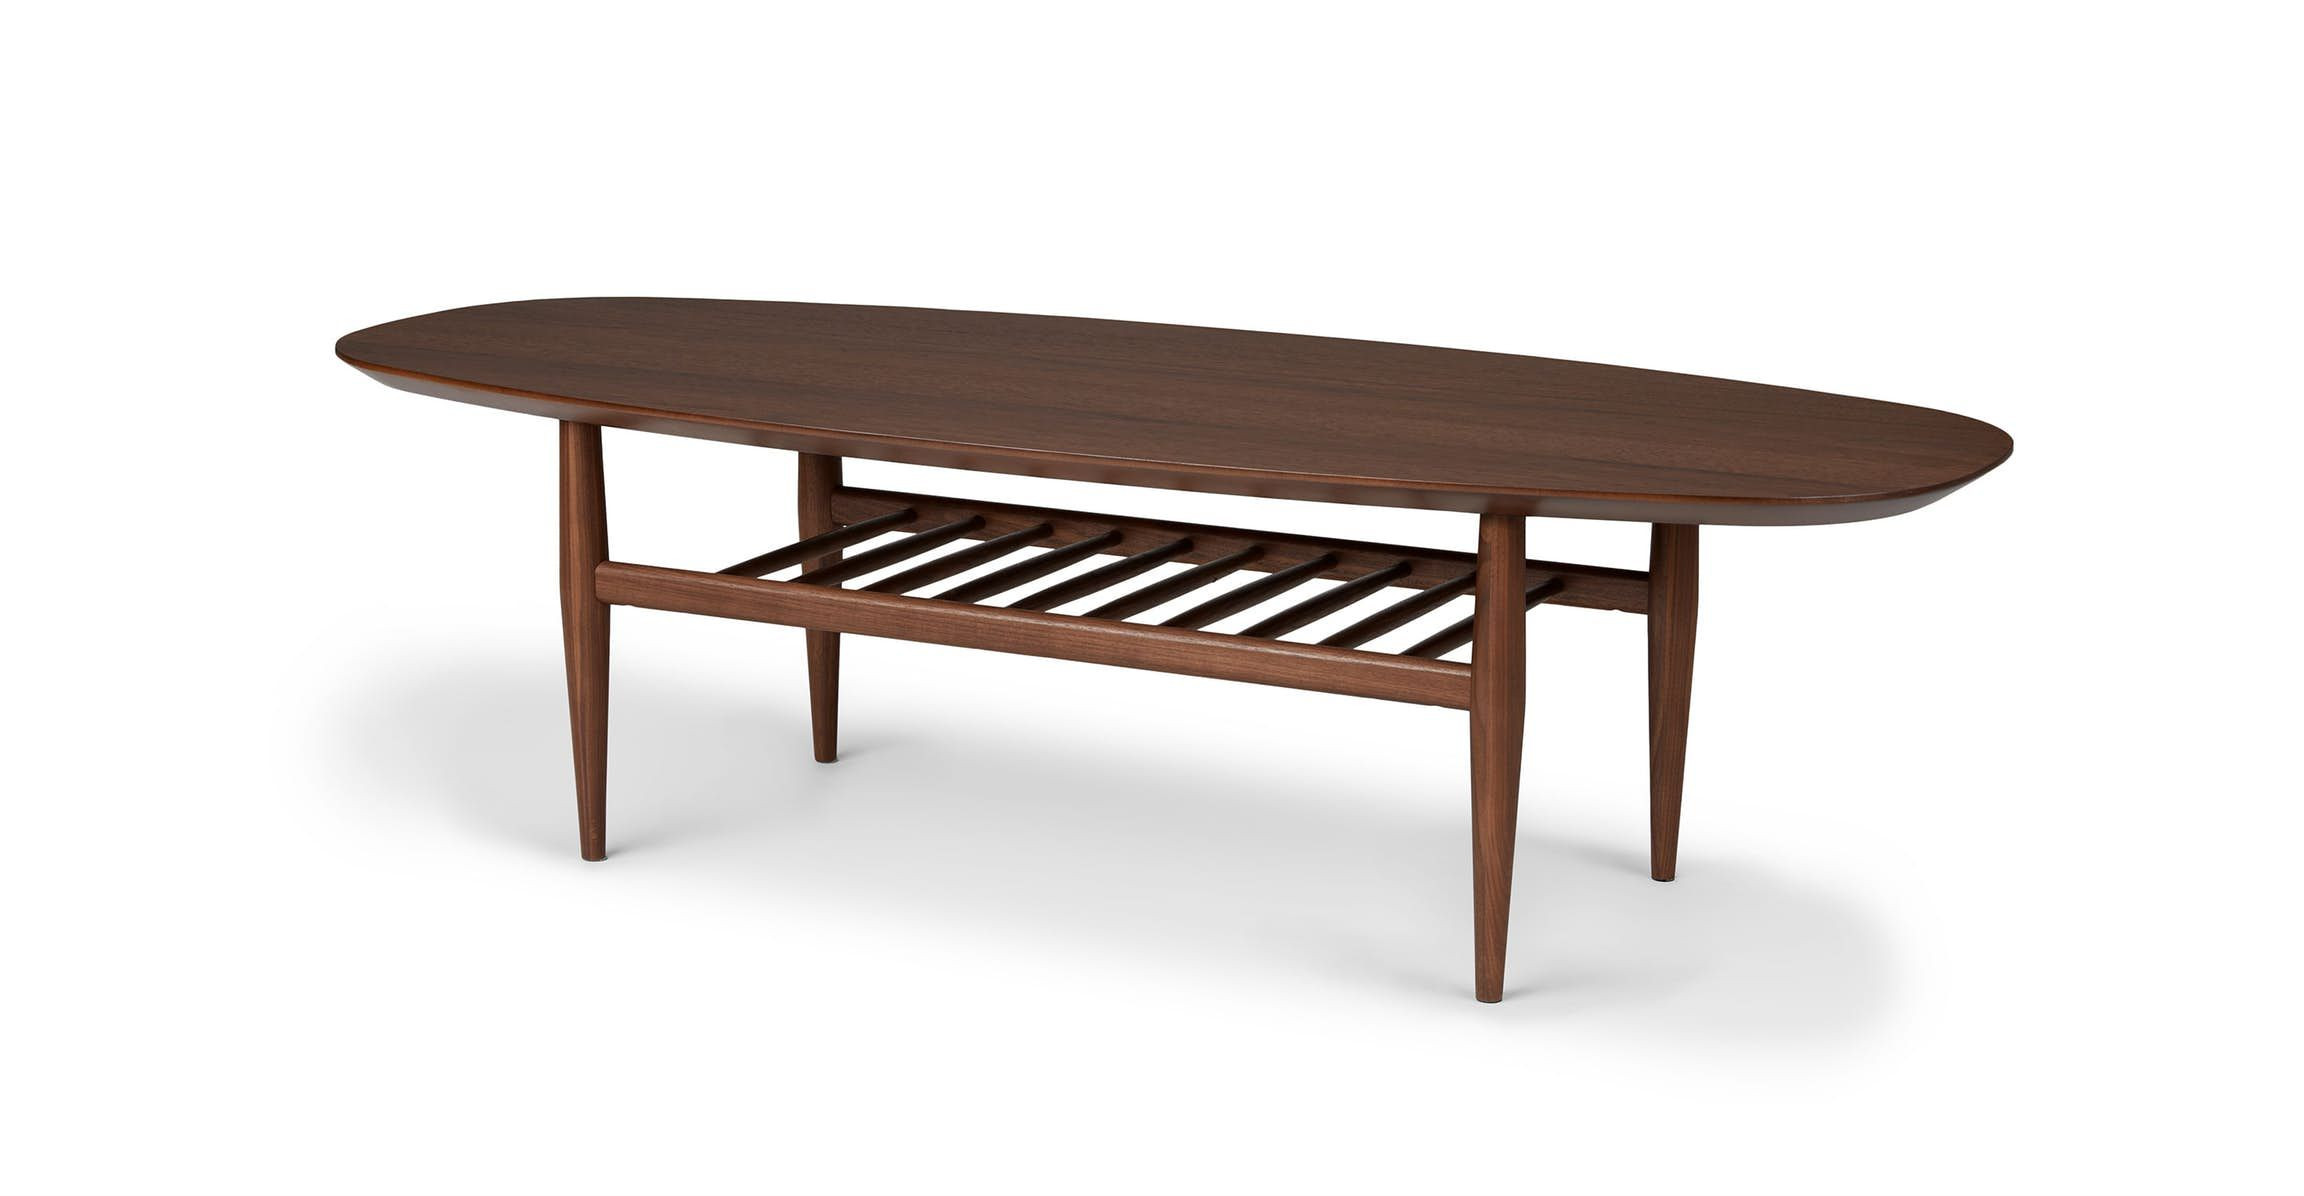 Mid Century Modern Contemporary Coffee Tables Article Mid Century Modern Coffee Table Oval Coffee Tables Coffee Table [ 1196 x 2304 Pixel ]